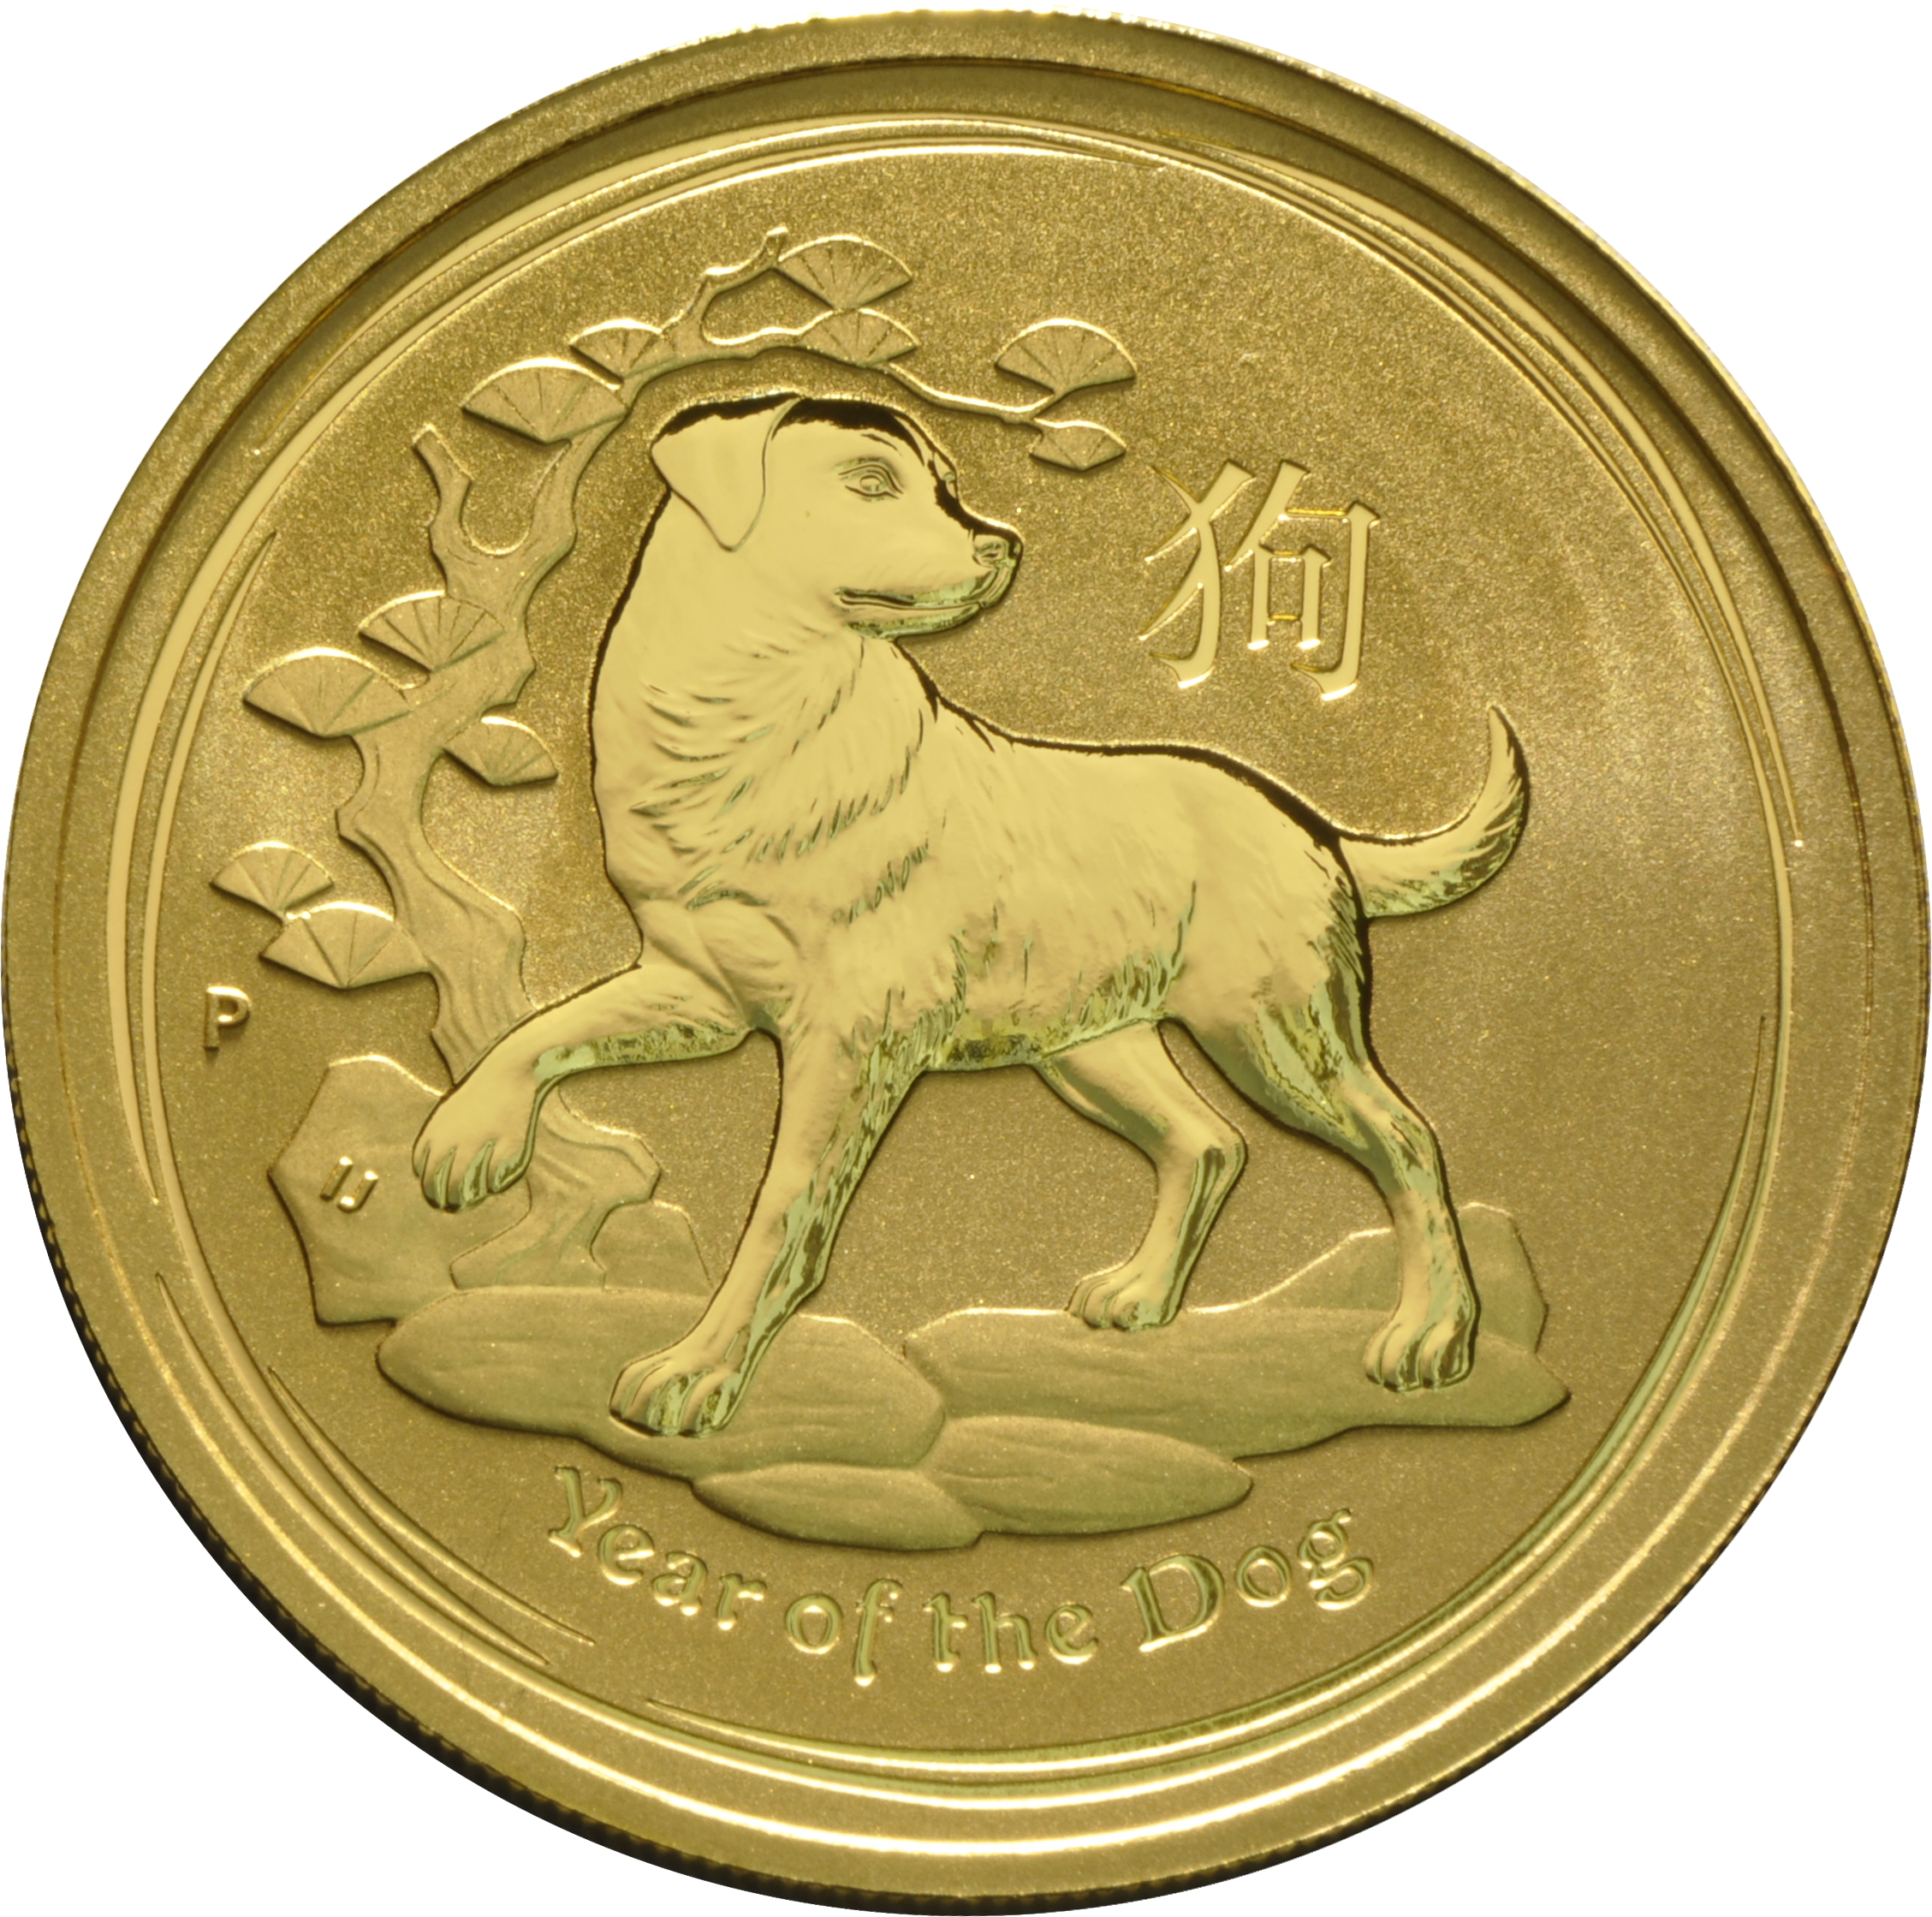 Buy 1oz Perth Mint Lunar Dog Gold Coin From Bullionbypost From 163 1 103